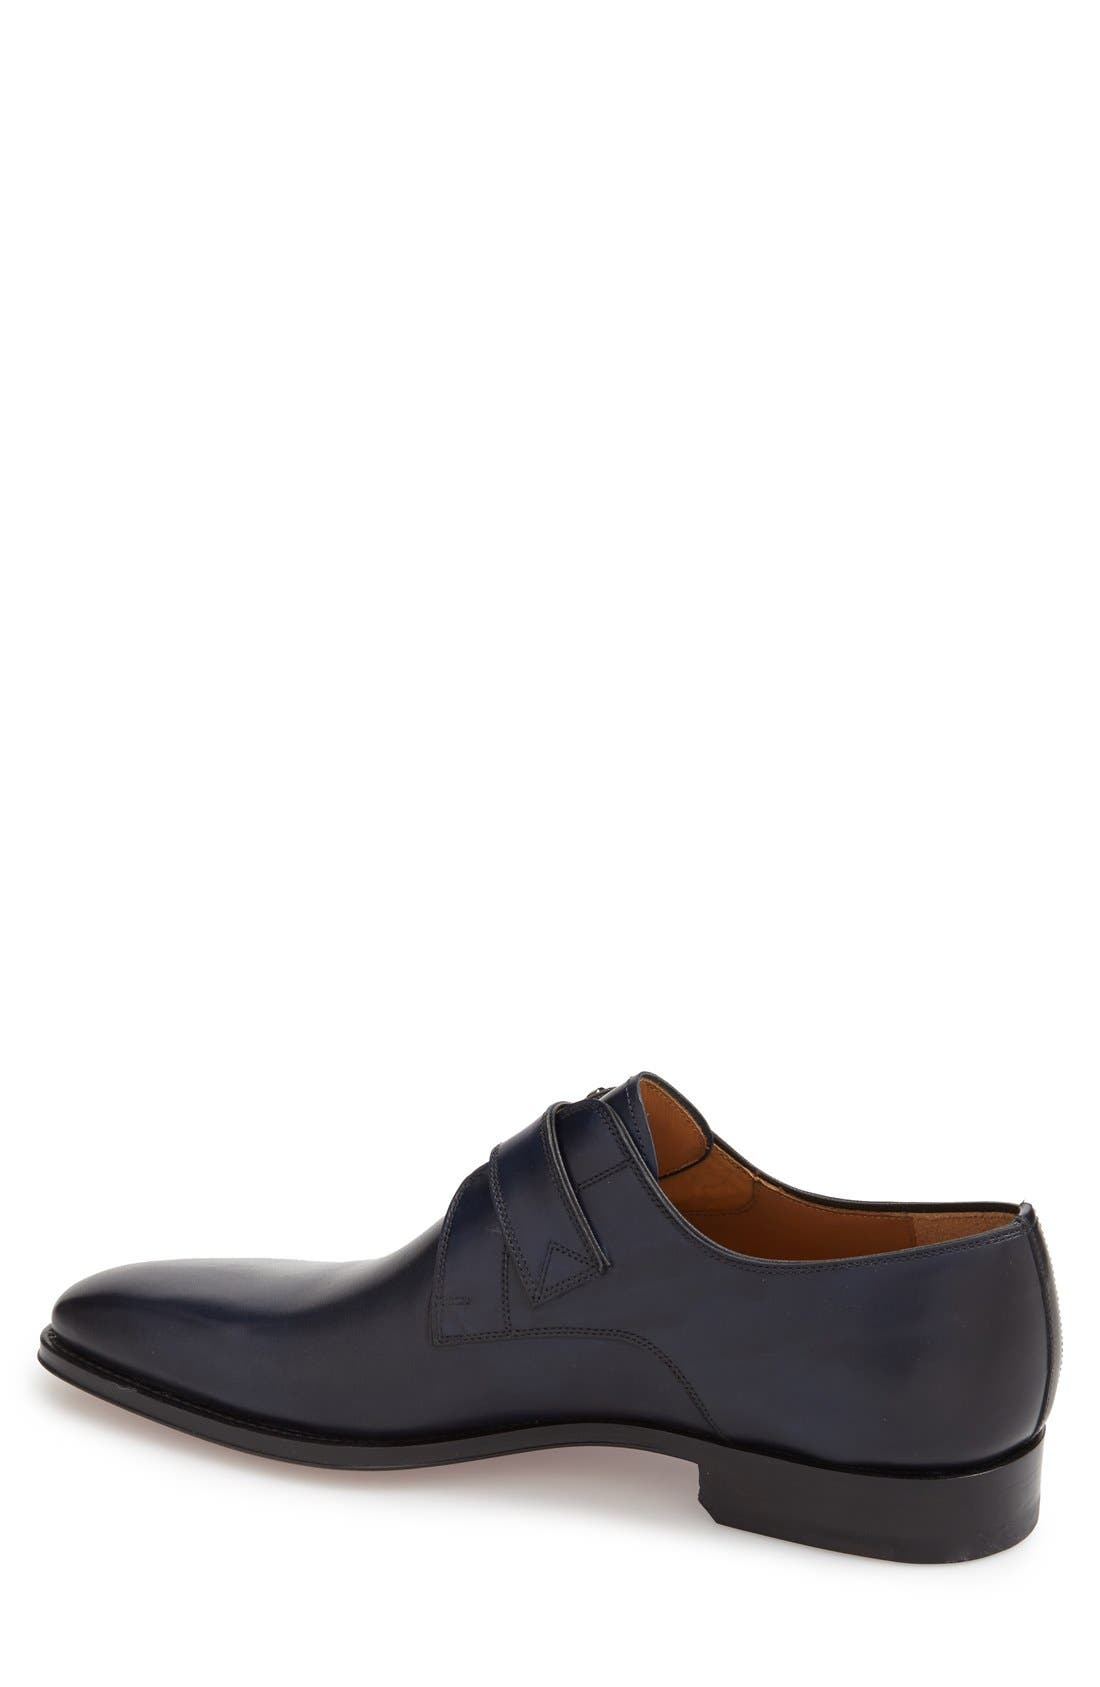 Marco Monk Strap Loafer,                             Alternate thumbnail 2, color,                             Navy Leather